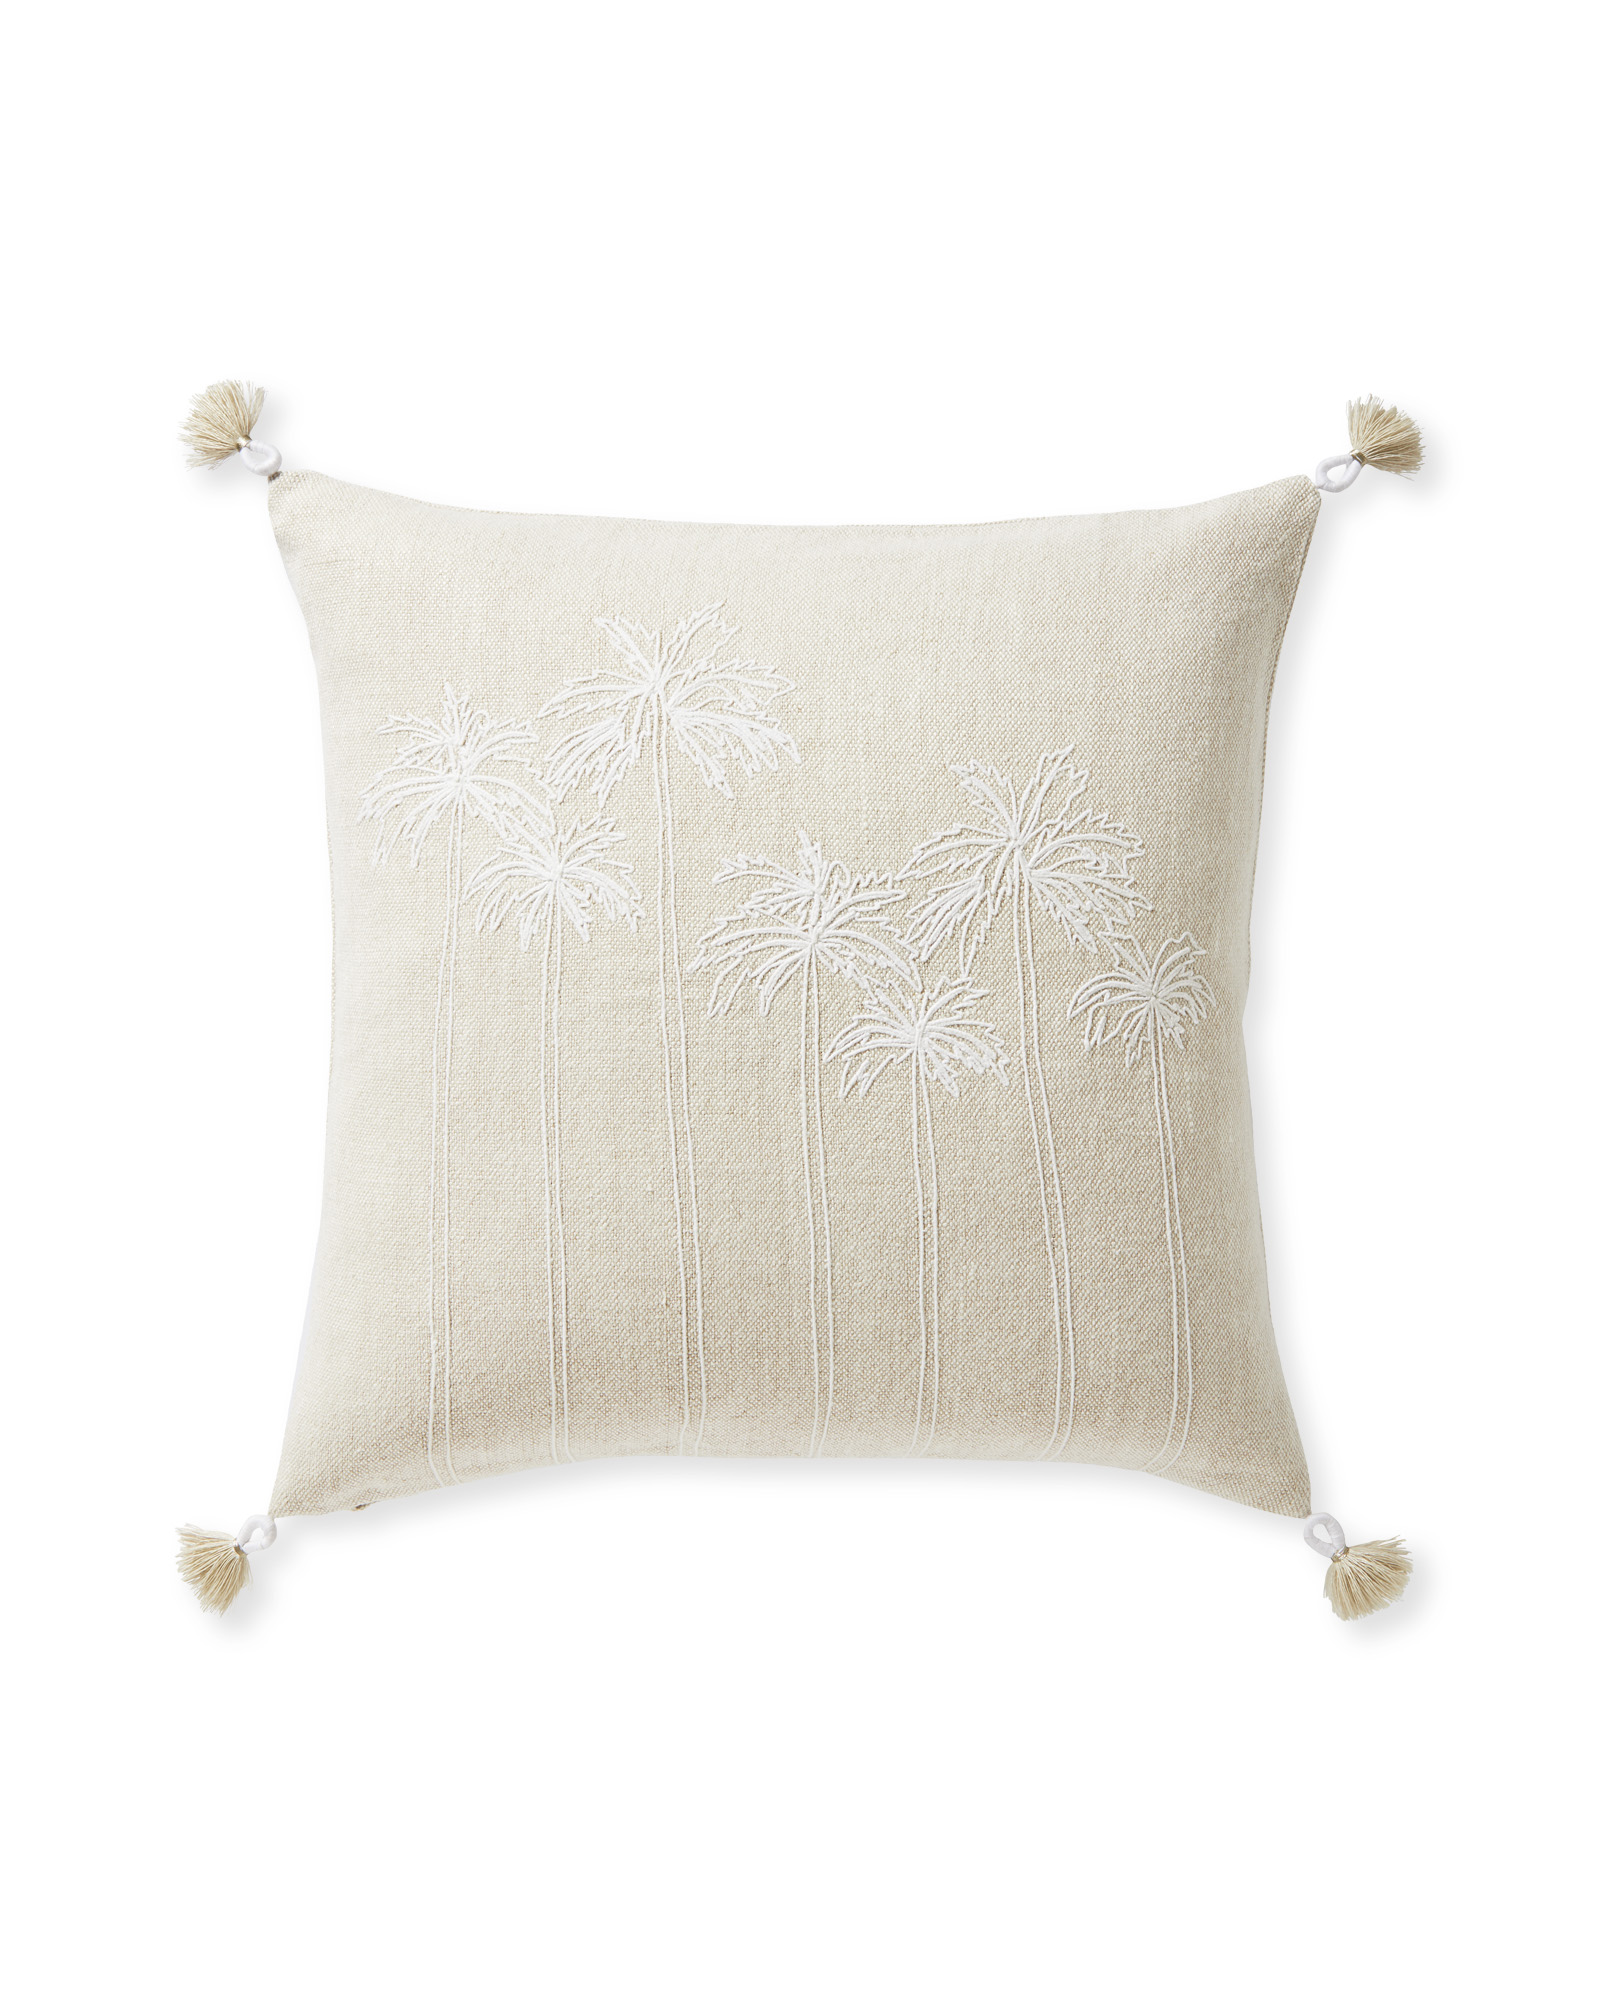 Seabreeze Pillow Cover, Sand